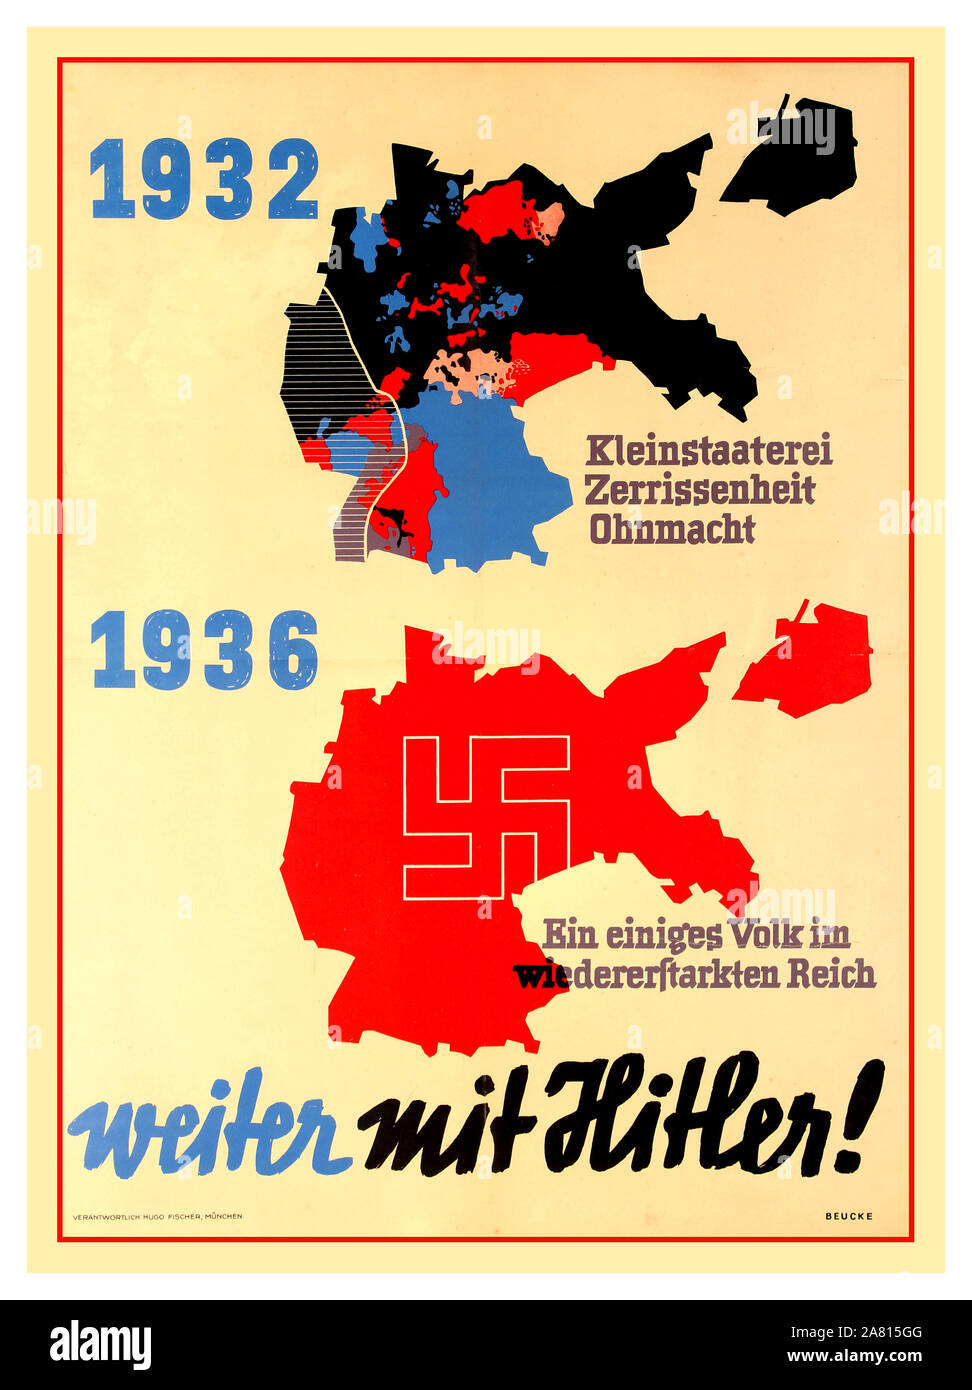 "Vintage Nazi Germany 1936 Political Propaganda Map Poster NAZI PROPAGANDA POSTER 1932-1936  ""CONTINUE WITH HITLER"" (WEITER MIT HITLER)  '1932 petty-bourgeois disunity'  1936  ""A united people in the restored Reich""  Red Swastika emblem over reunified Greater Germany Stock Photo"